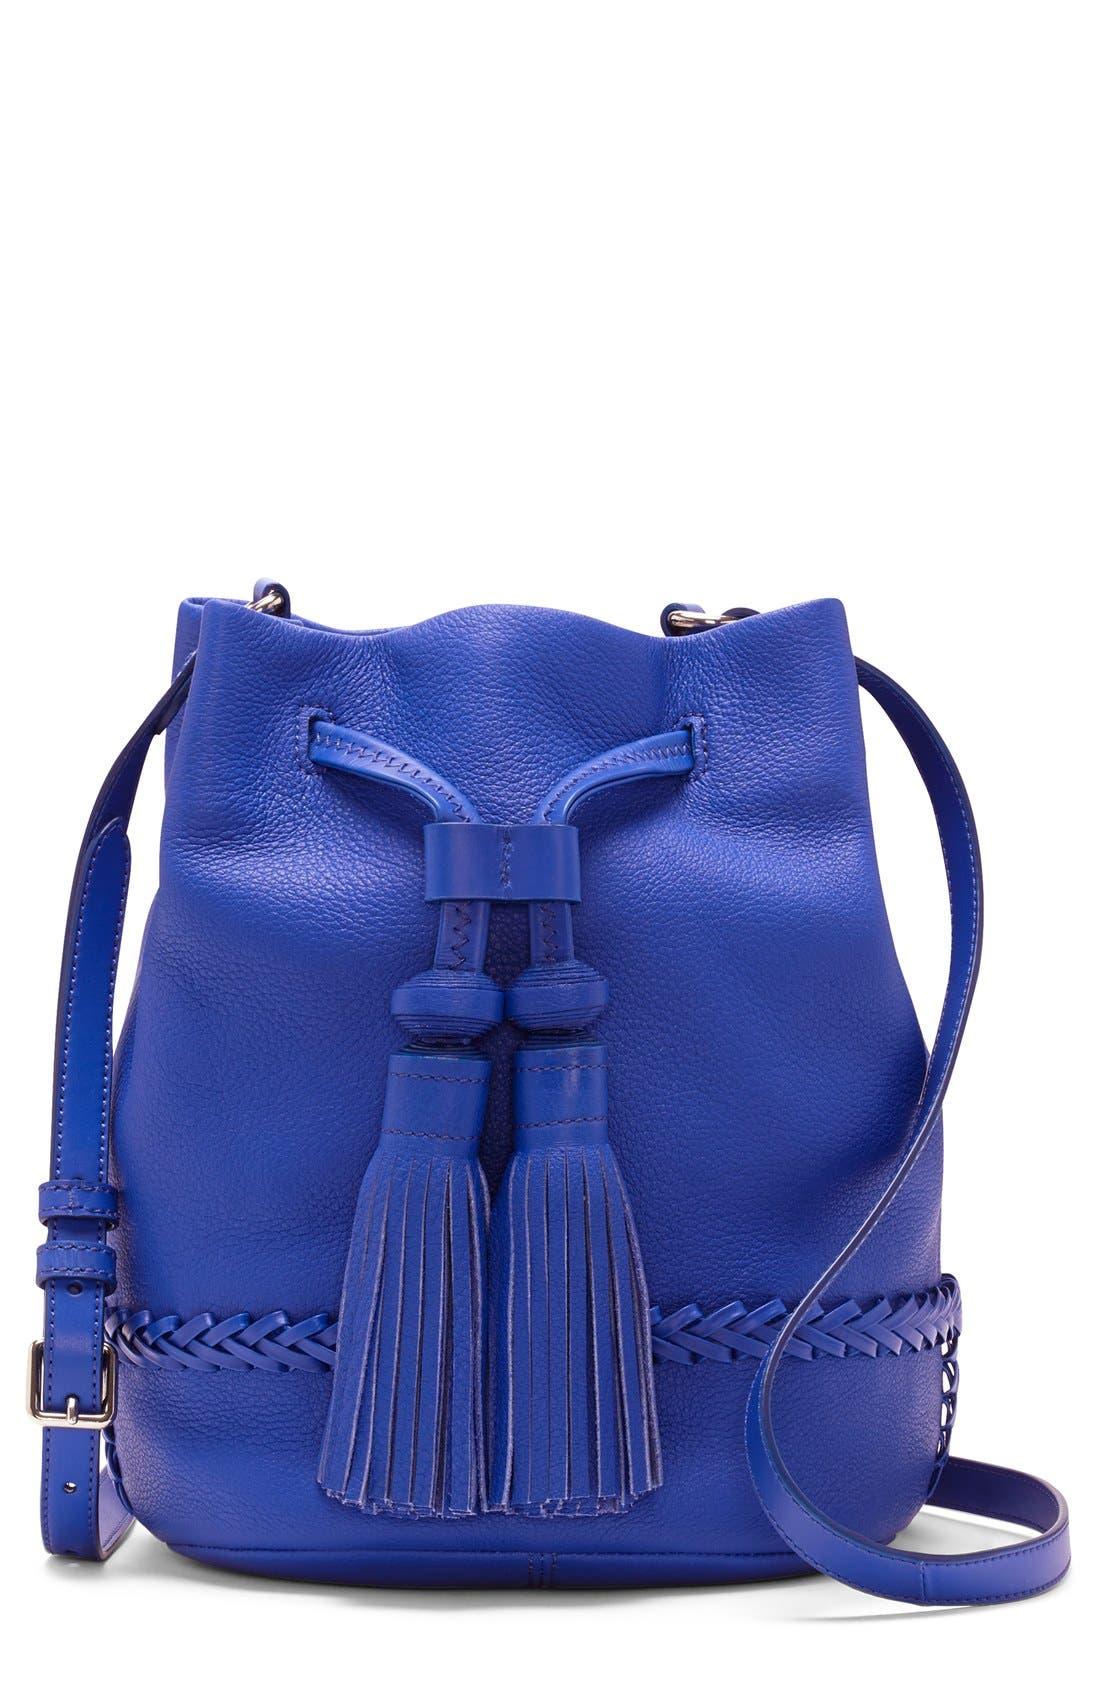 Main Image - Vince Camuto 'Leigh' Leather Crossbody Bag